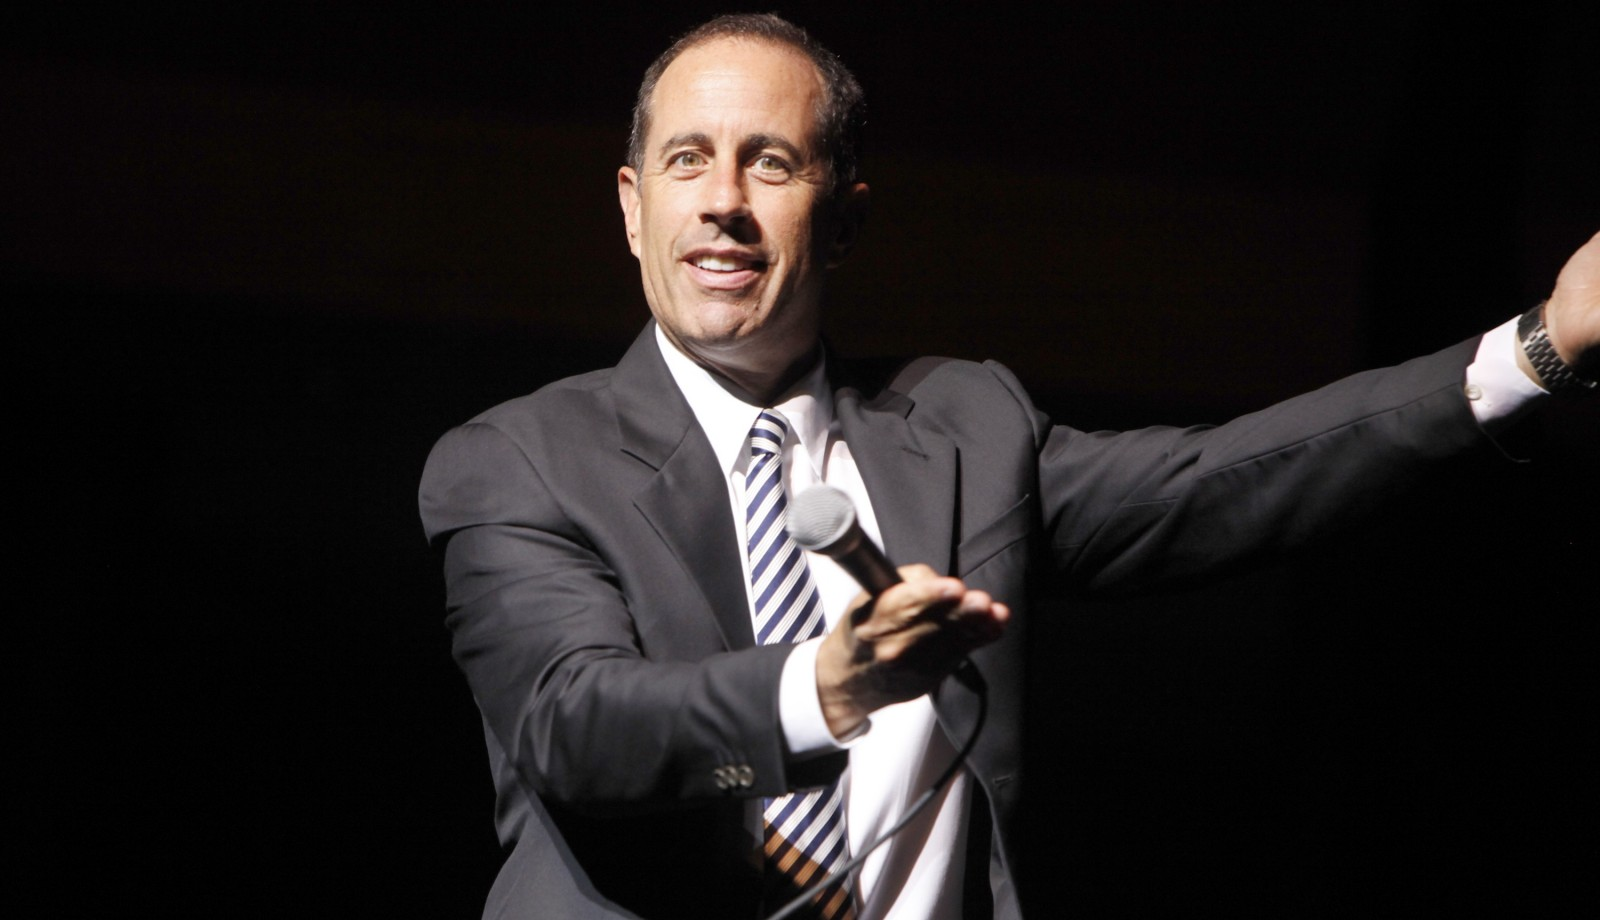 Jerry Seinfeld returns to perform two sold-out shows in Shea's Performing Arts Center.